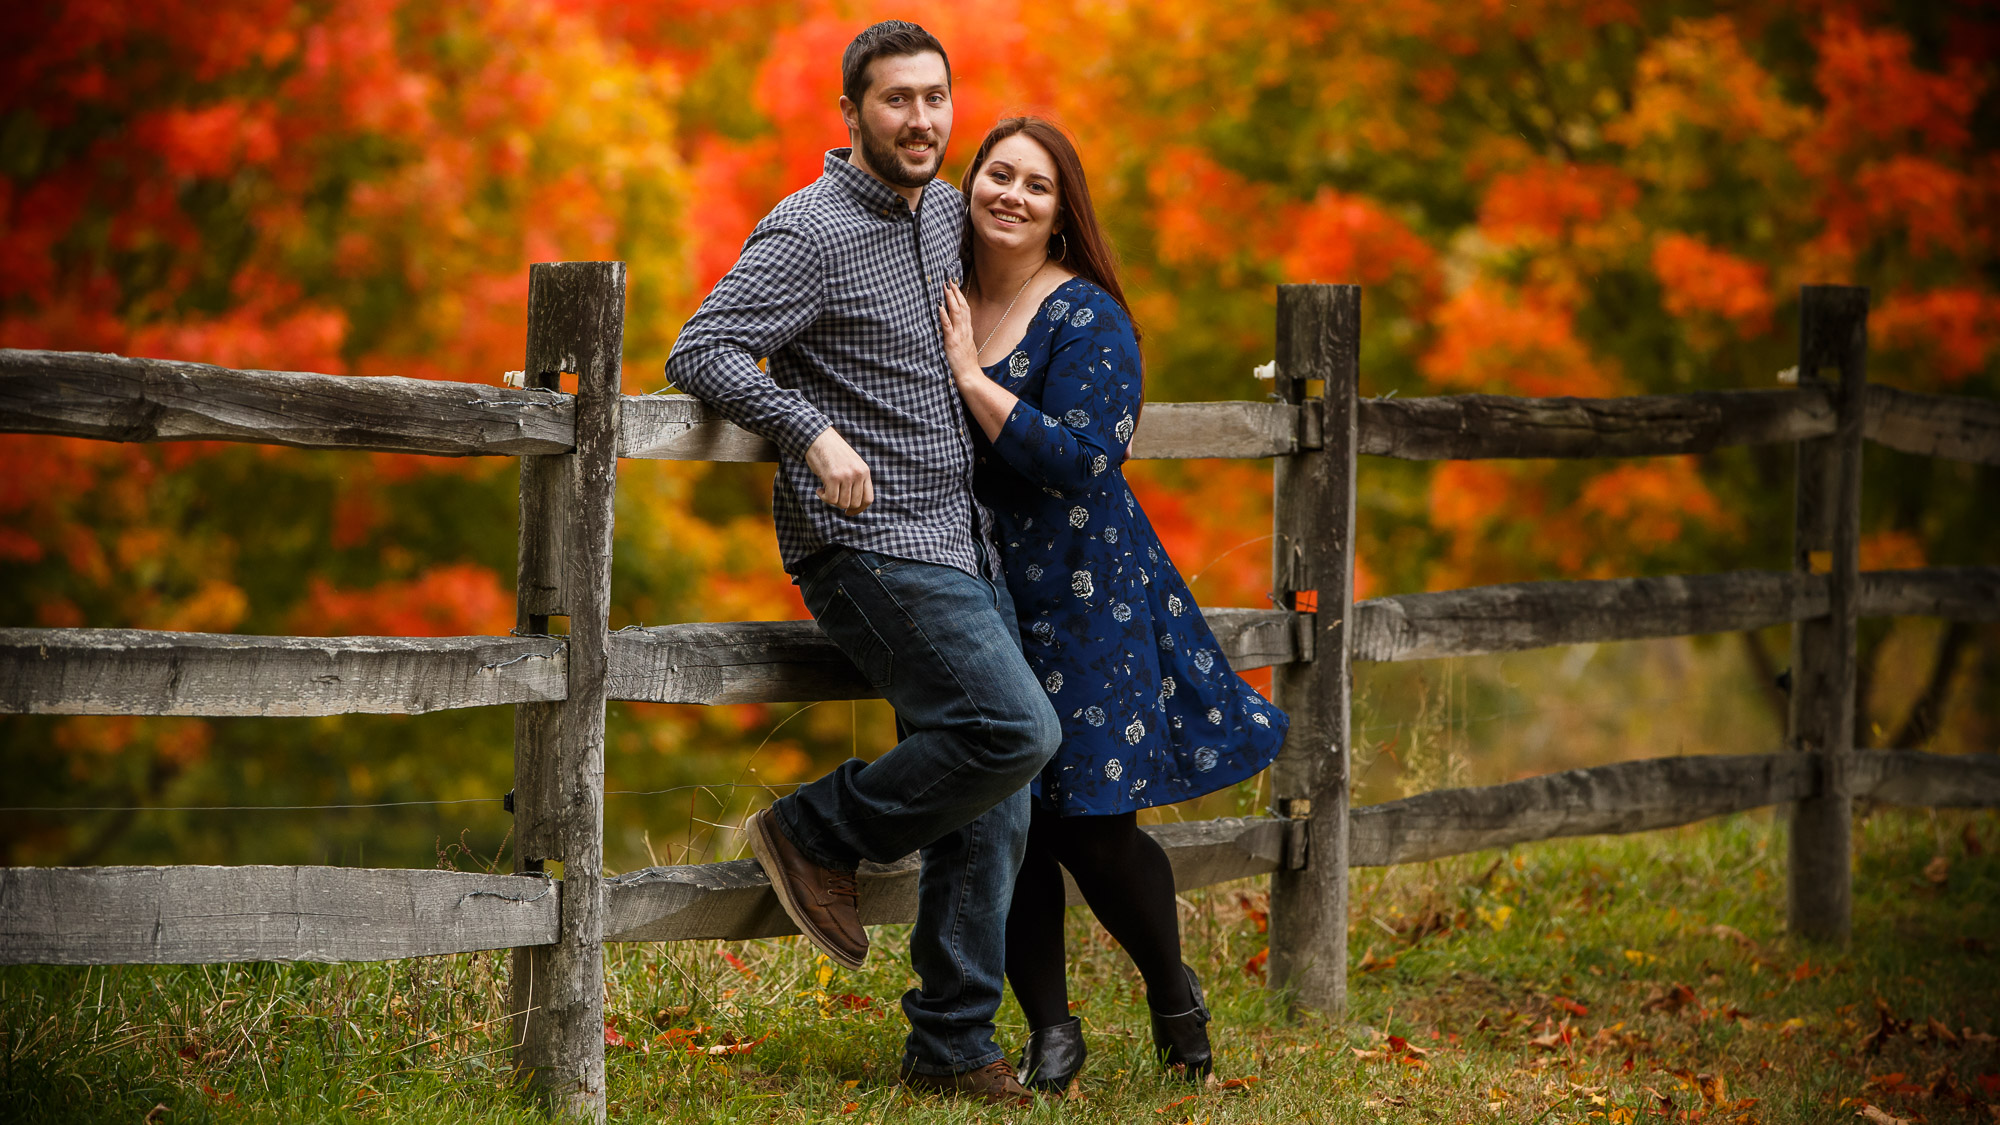 Engagement photographers in CT